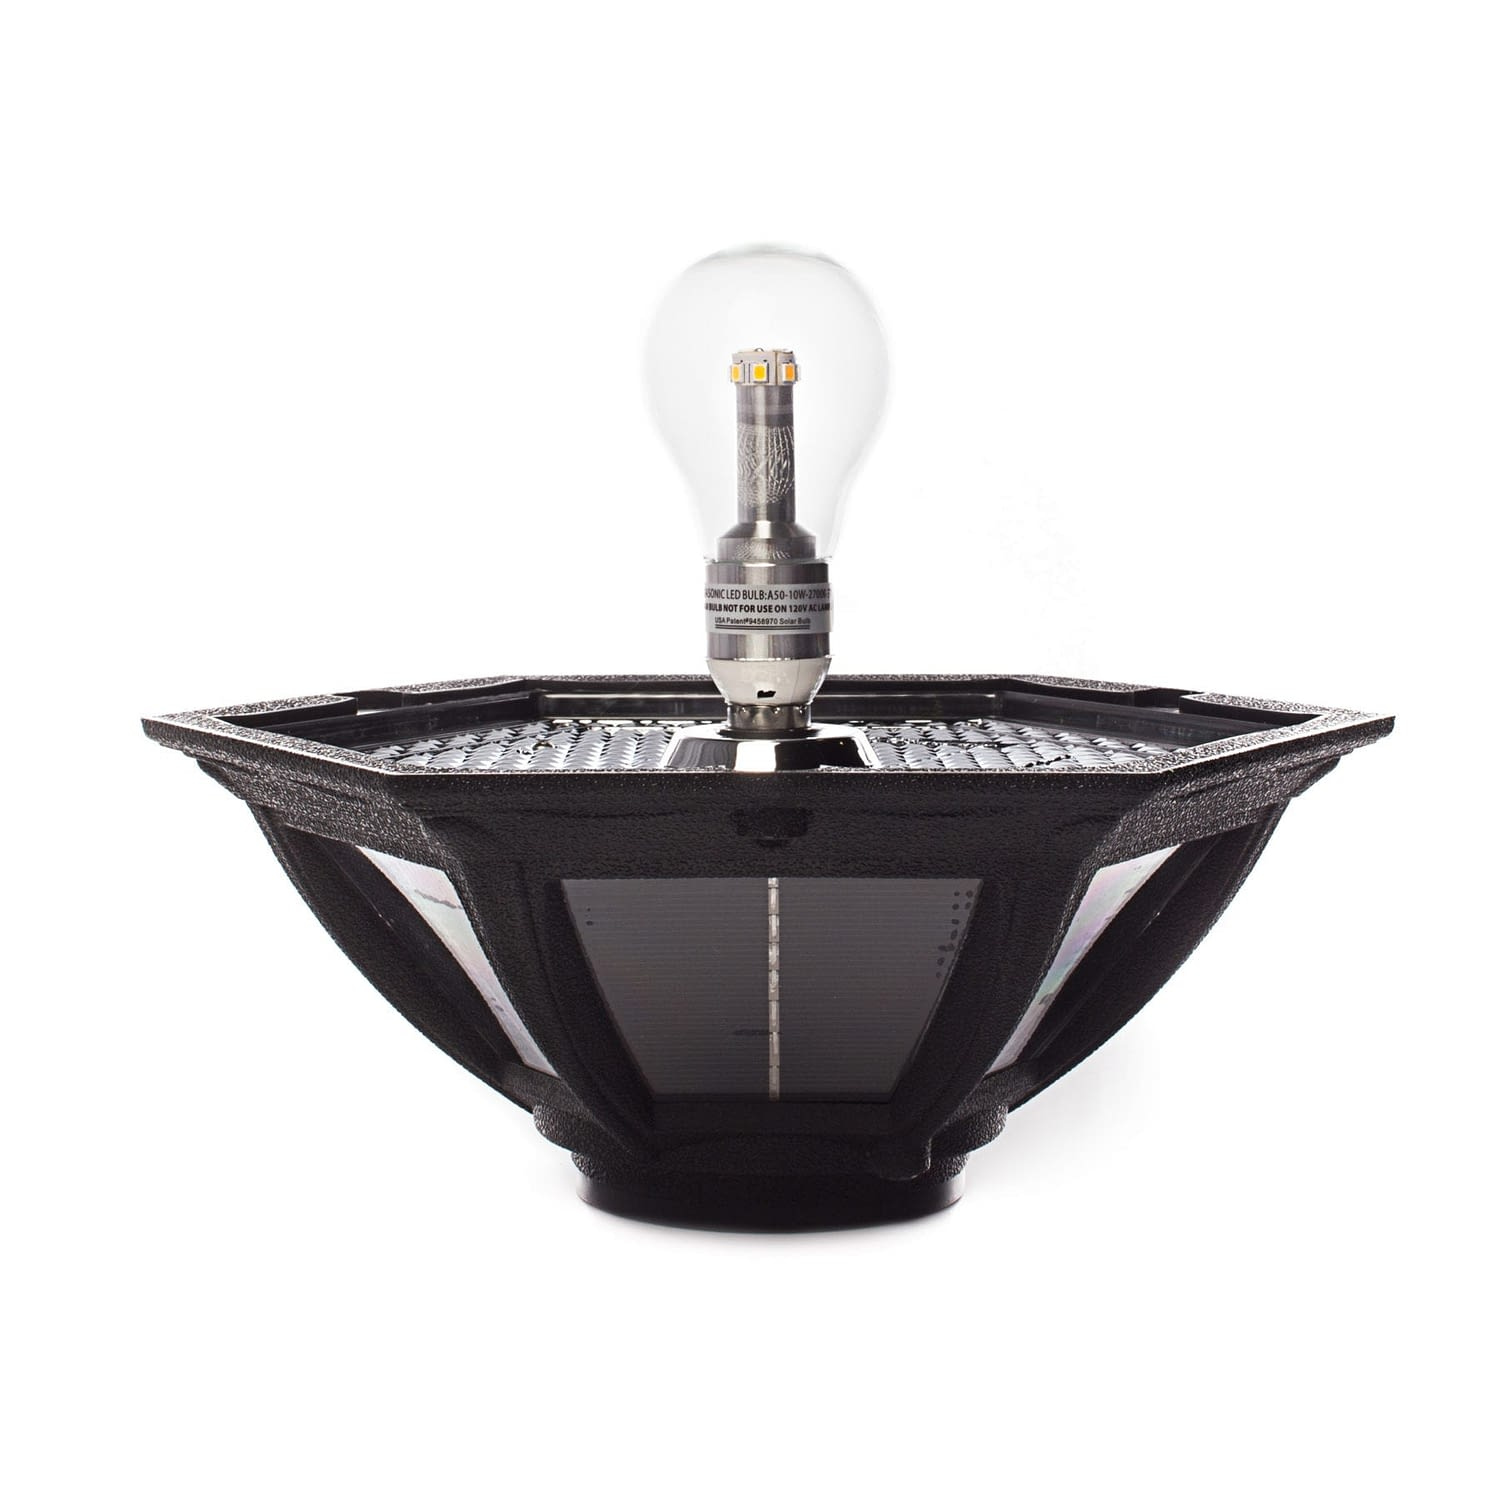 Polaris Solar Wall Light Bulb